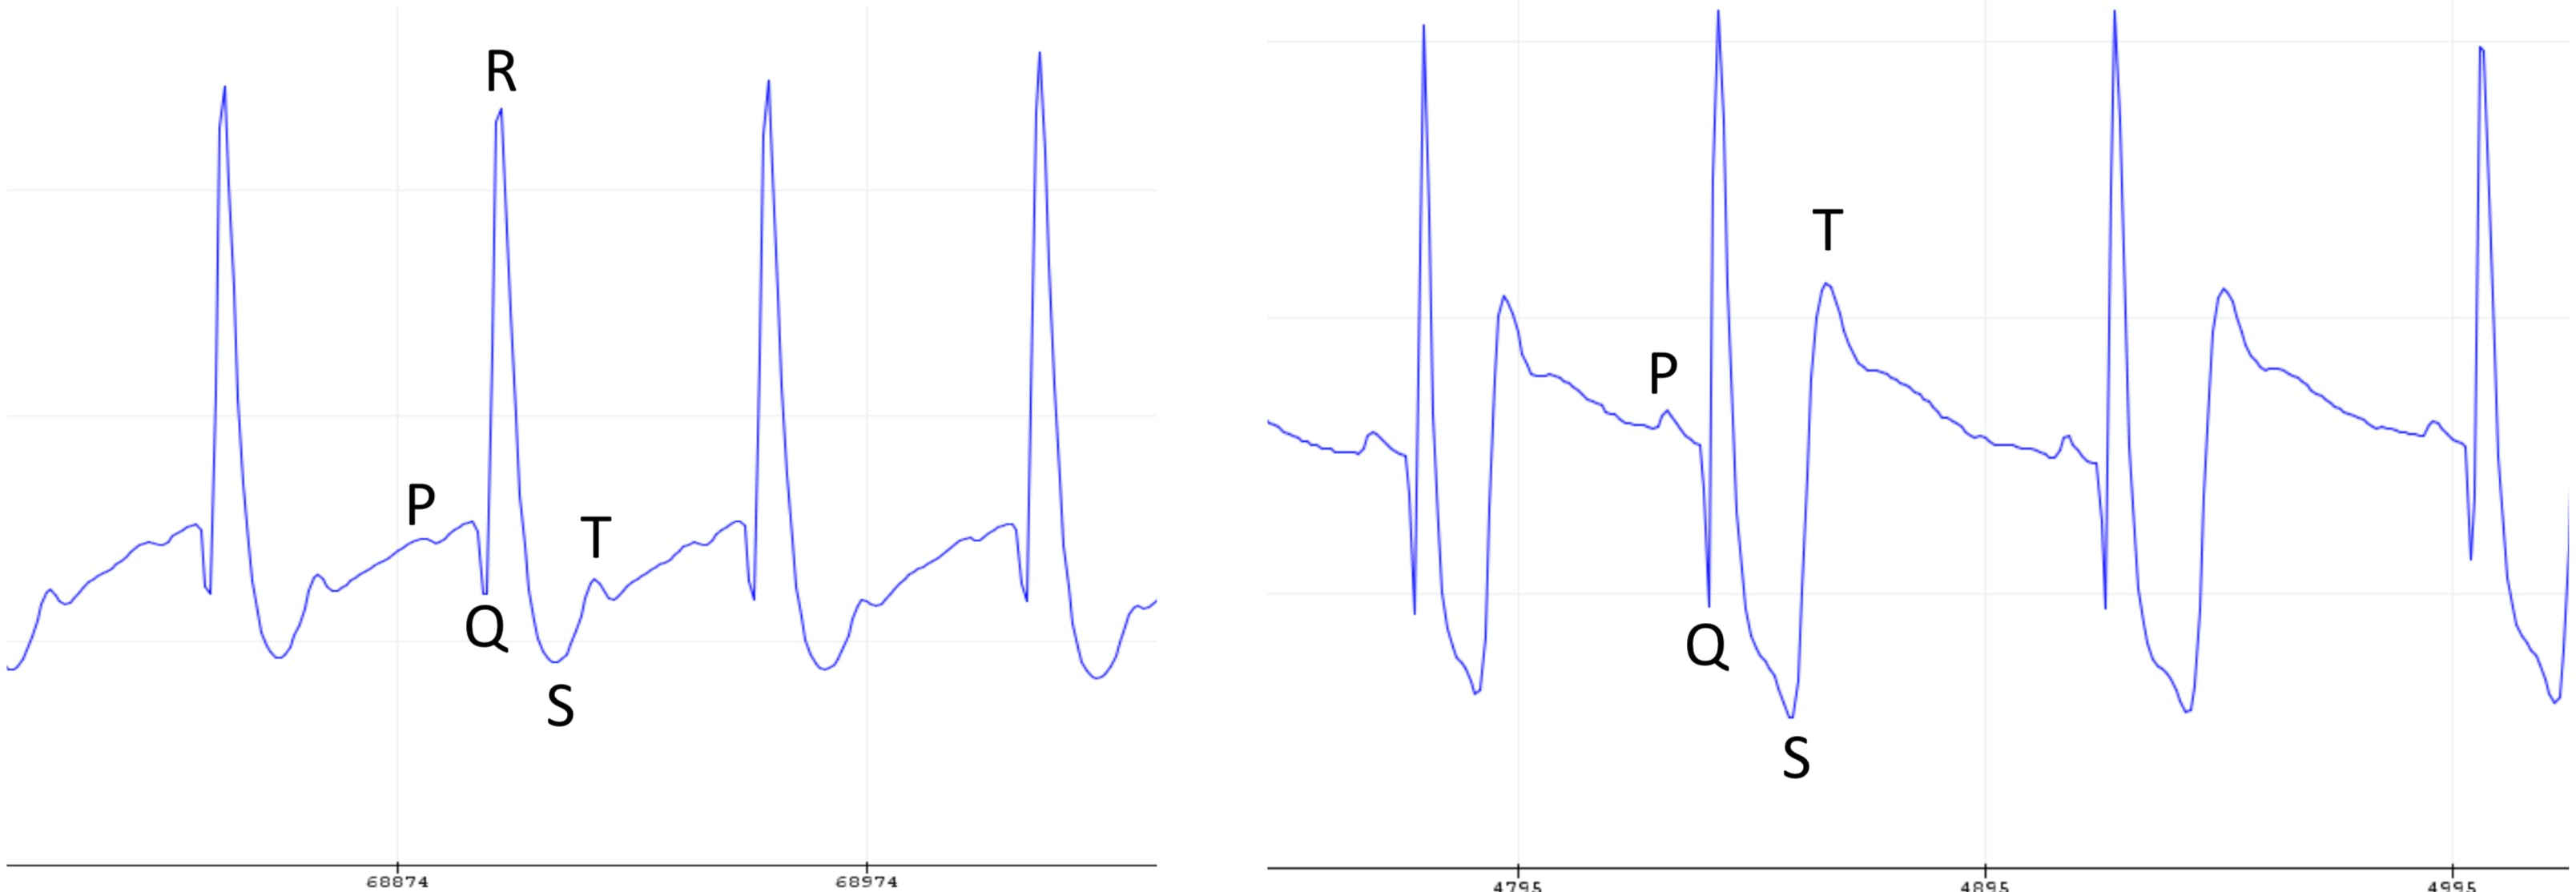 Figure 12 - ECG curves acquired from 2 different people and identified features.